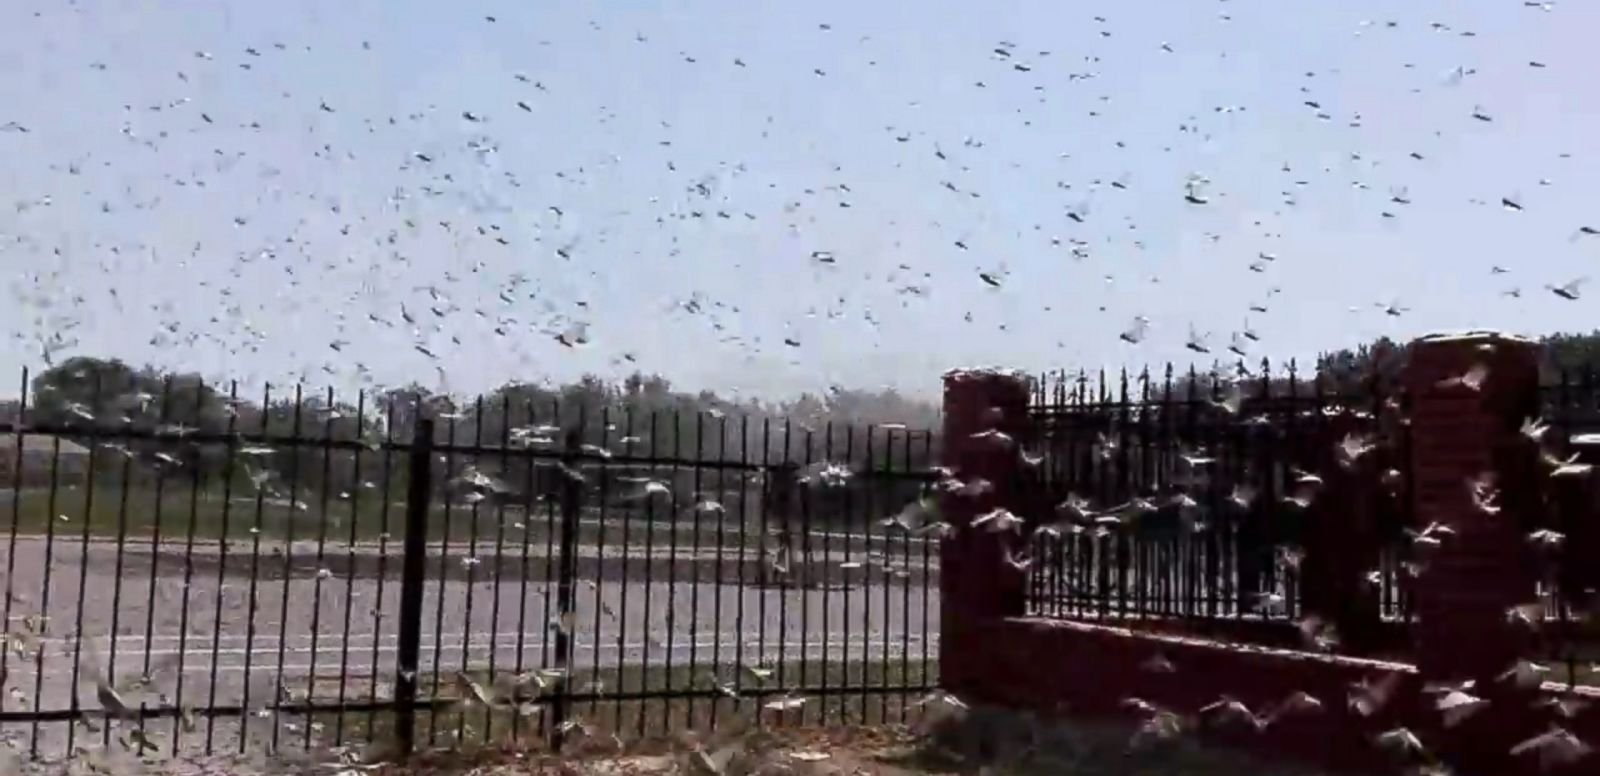 VIDEO: A video shot by a local man in Achikulak, a village in the Stavropol region, shows thousands of the bugs swarming towards a church.